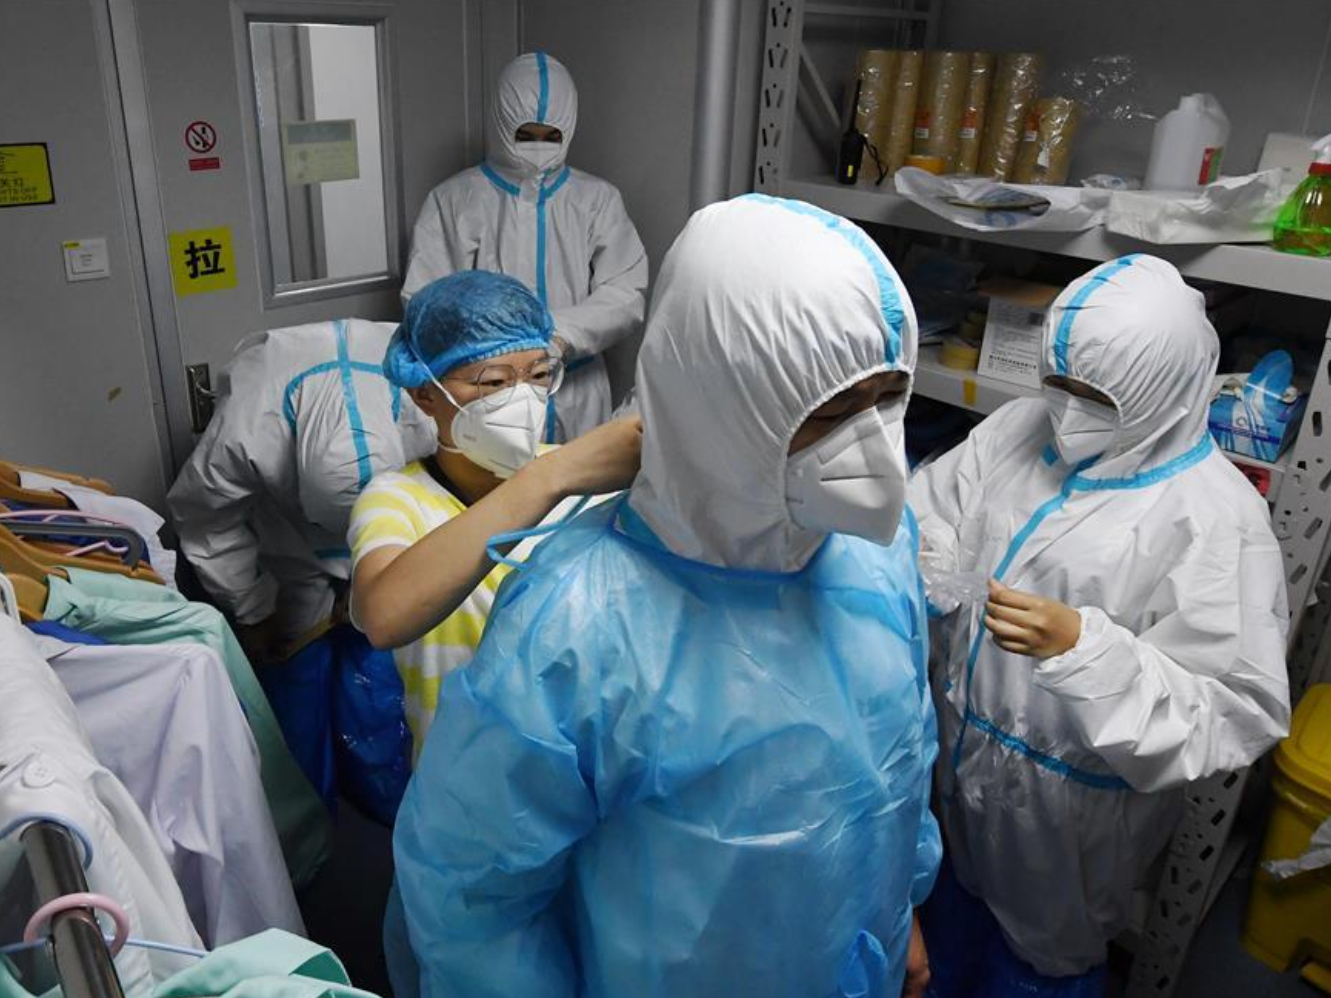 Beijing reports 7 new confirmed COVID-19 cases